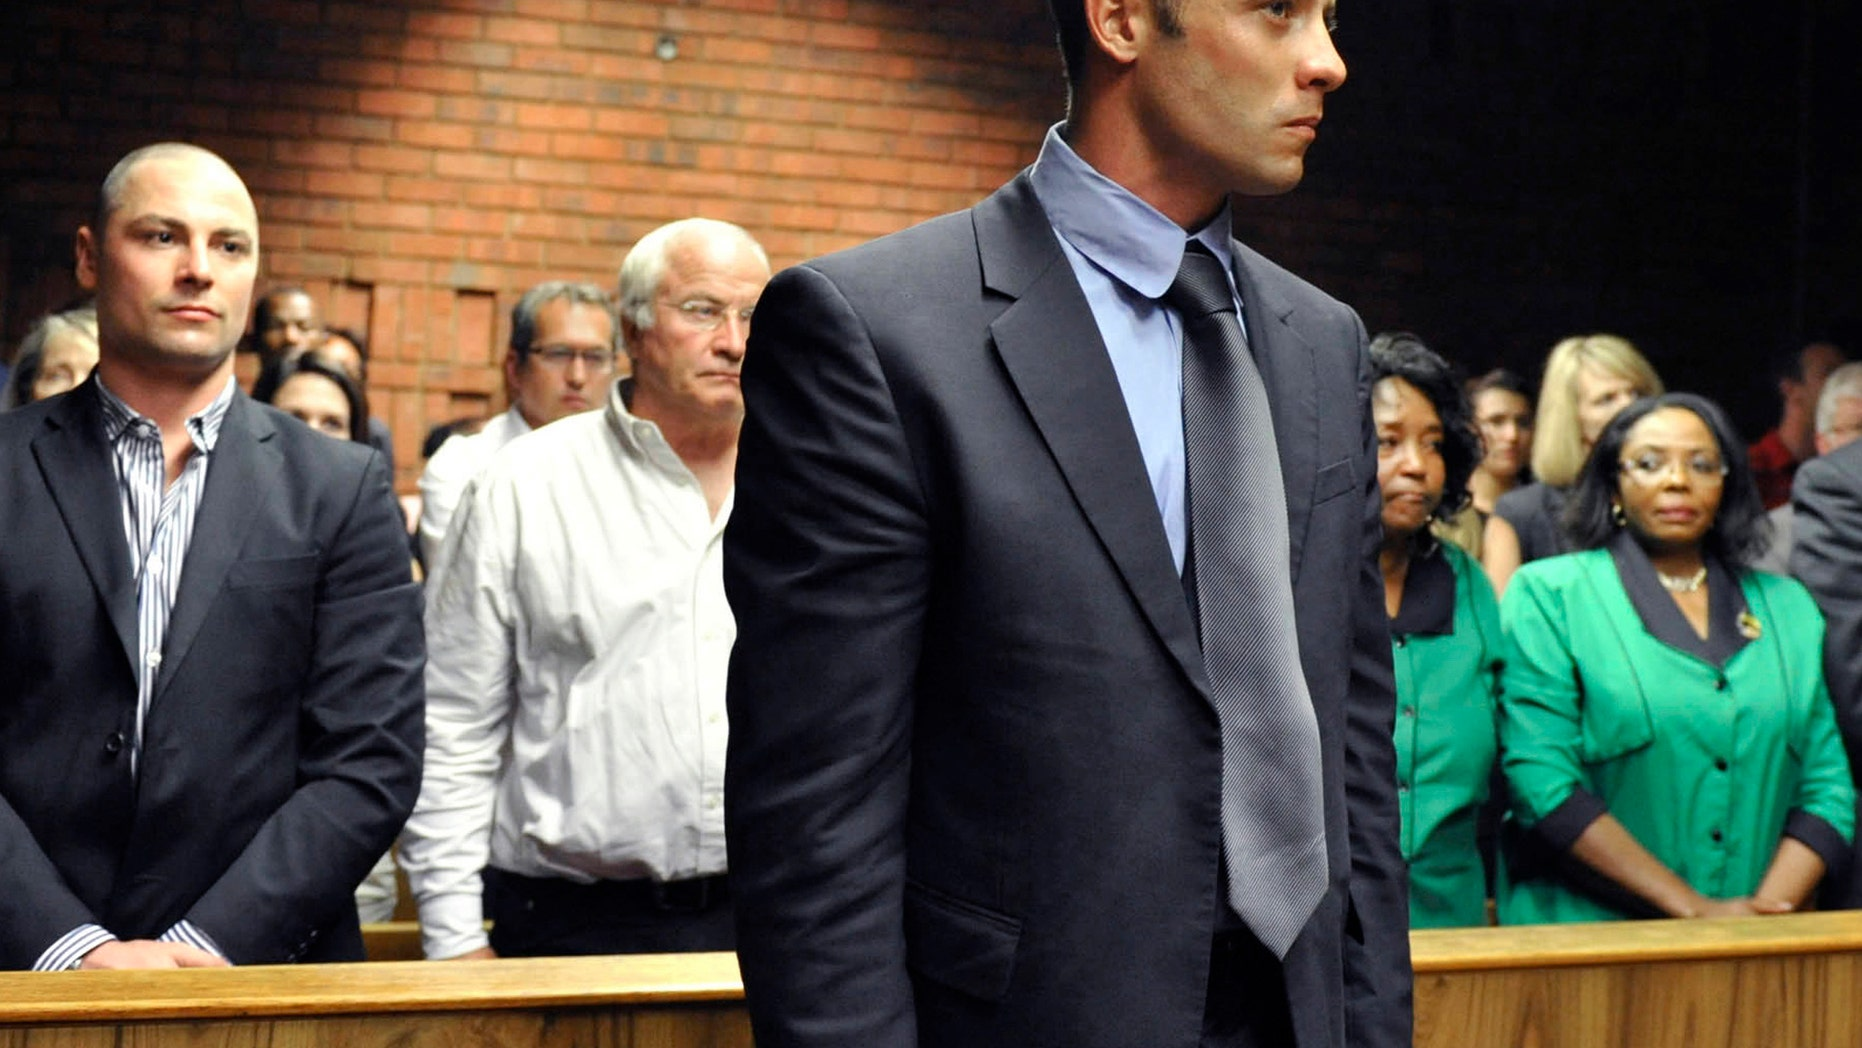 Olympian Oscar Pistorius, foreground, stands following his bail hearing, as his brother Carl, left, and father Henke, second from left, look on in Pretoria, South Africa, Tuesday, Feb. 19, 2013. Pistorius fired into the door of a small bathroom where his girlfriend was cowering after a shouting match on Valentine's Day, hitting her three times, a South African prosecutor said Tuesday as he charged the sports icon with premeditated murder. The magistrate ruled that Pistorius faces the harshest bail requirements available in South African law. He did not elaborate before a break was called in the session. (AP Photo)